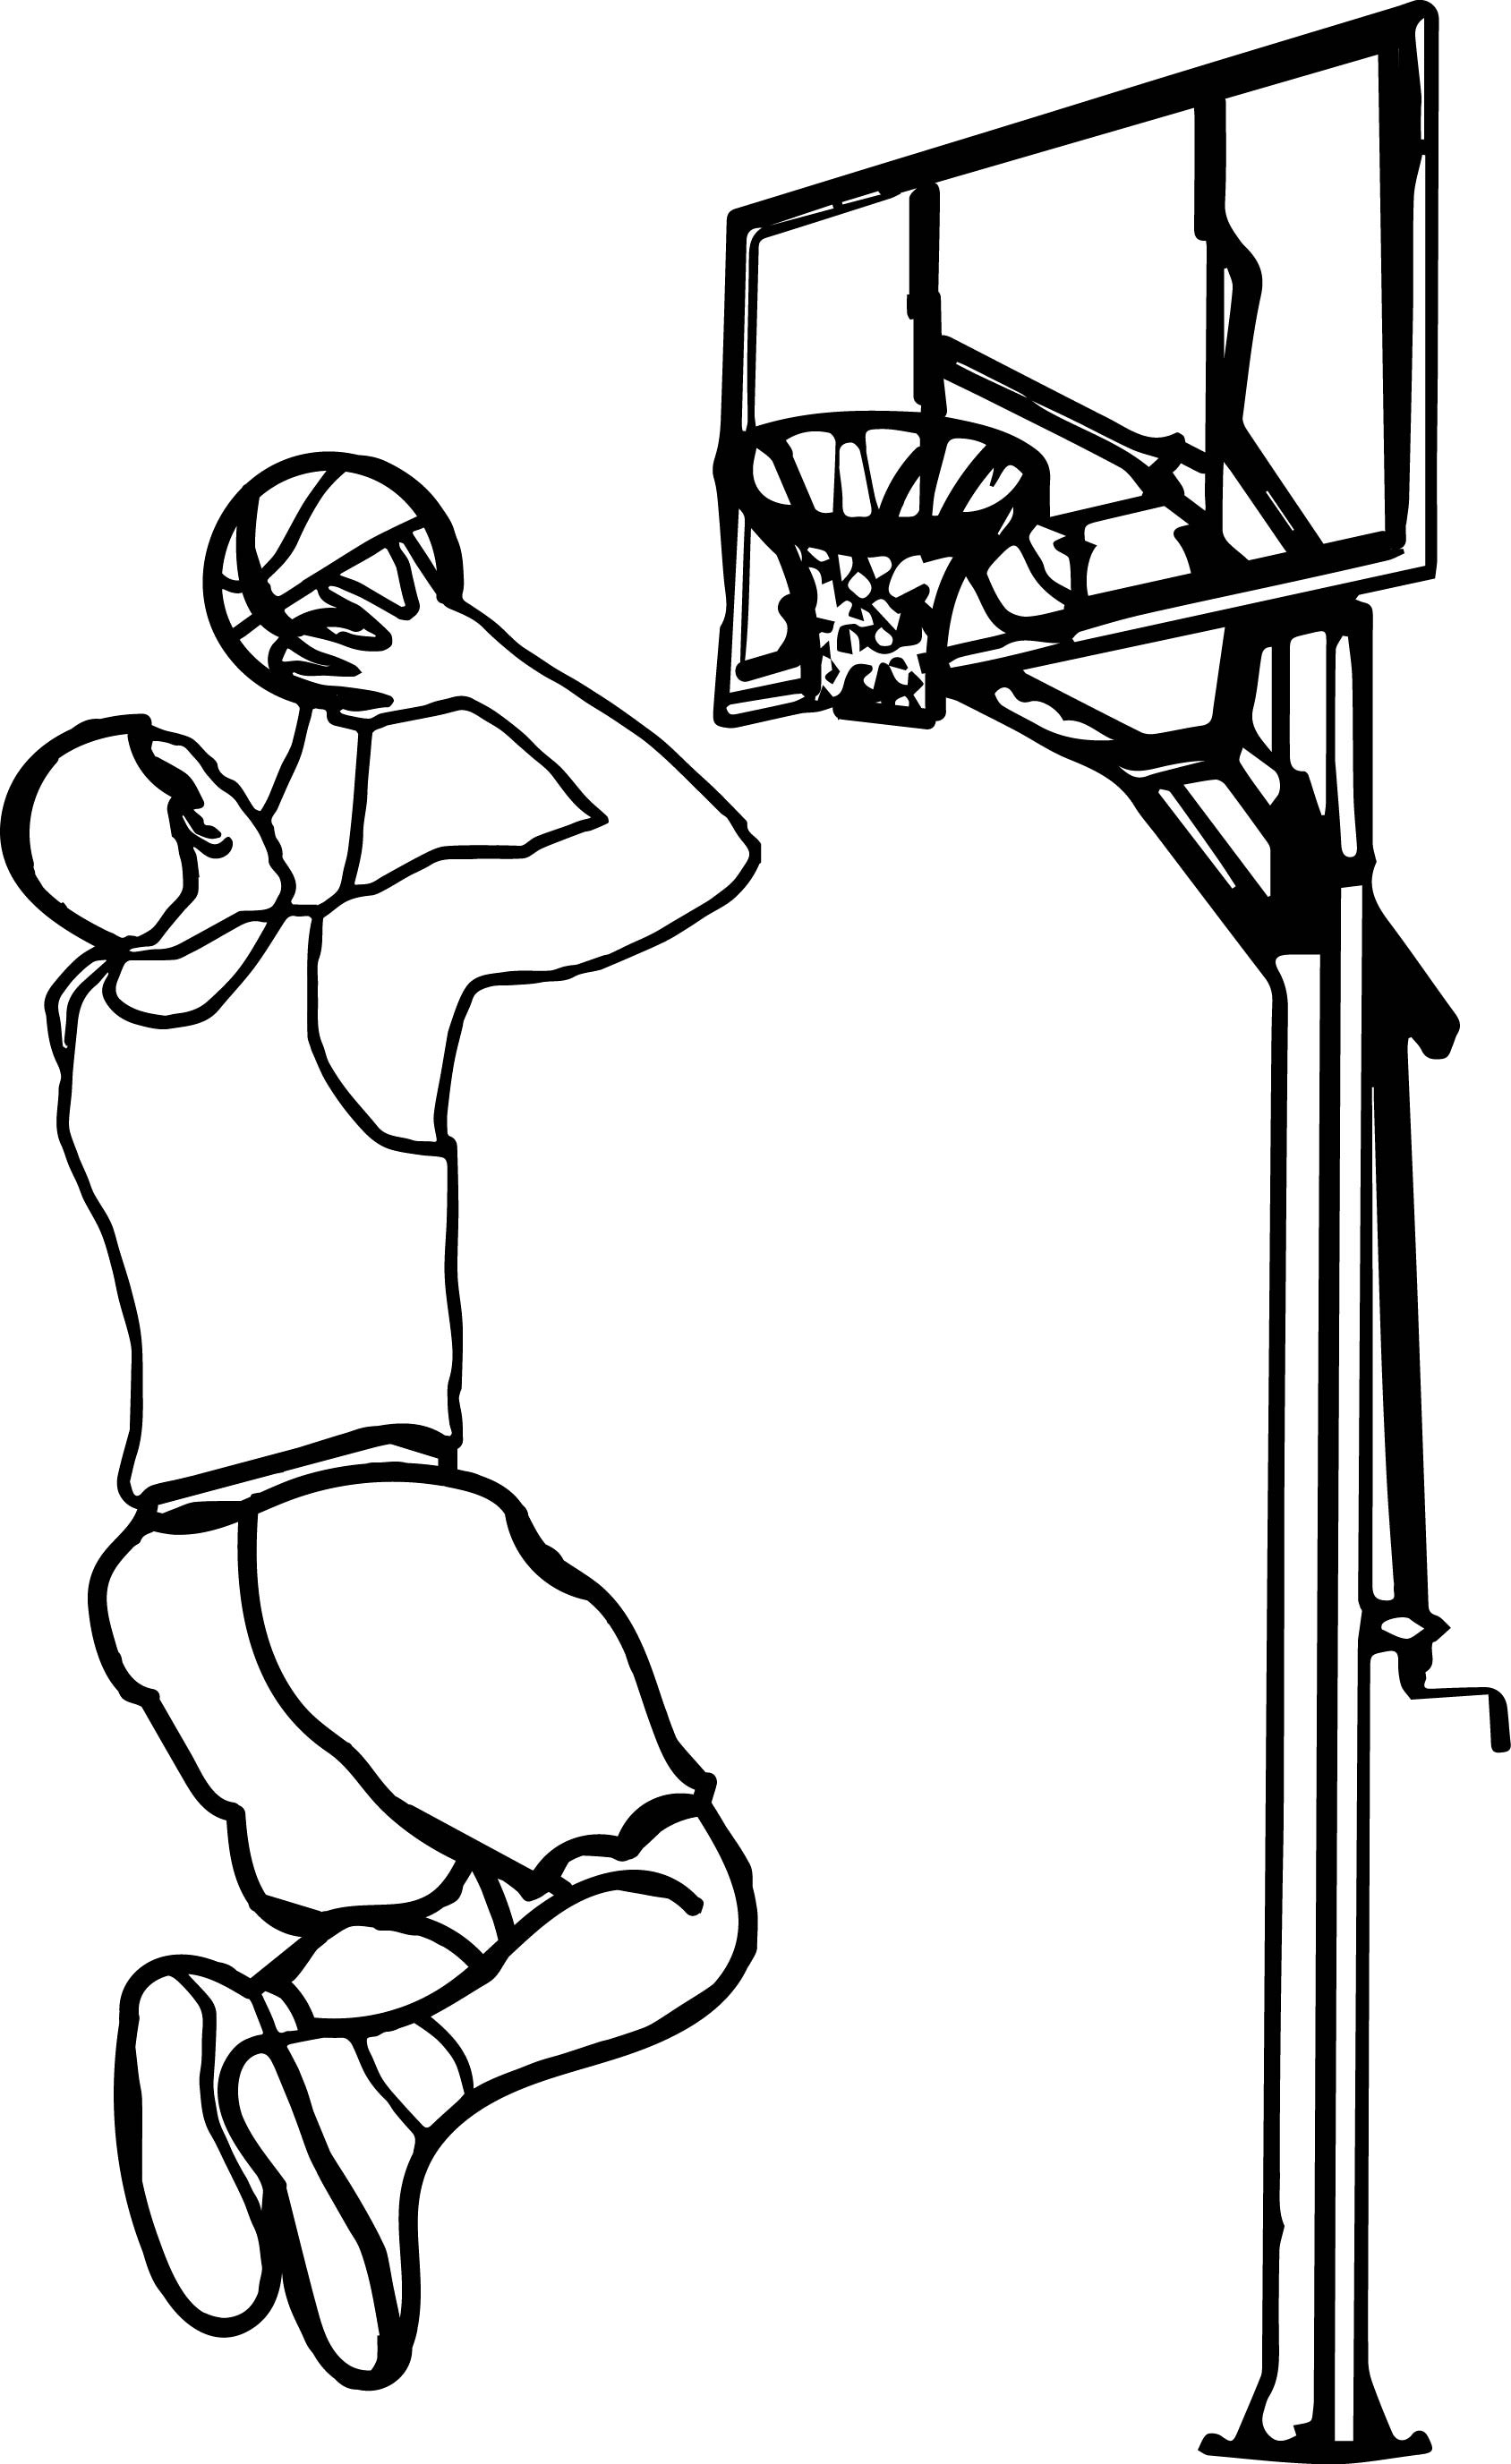 Basketball Outline Playing Clipart The Cliparts Play Black And White.